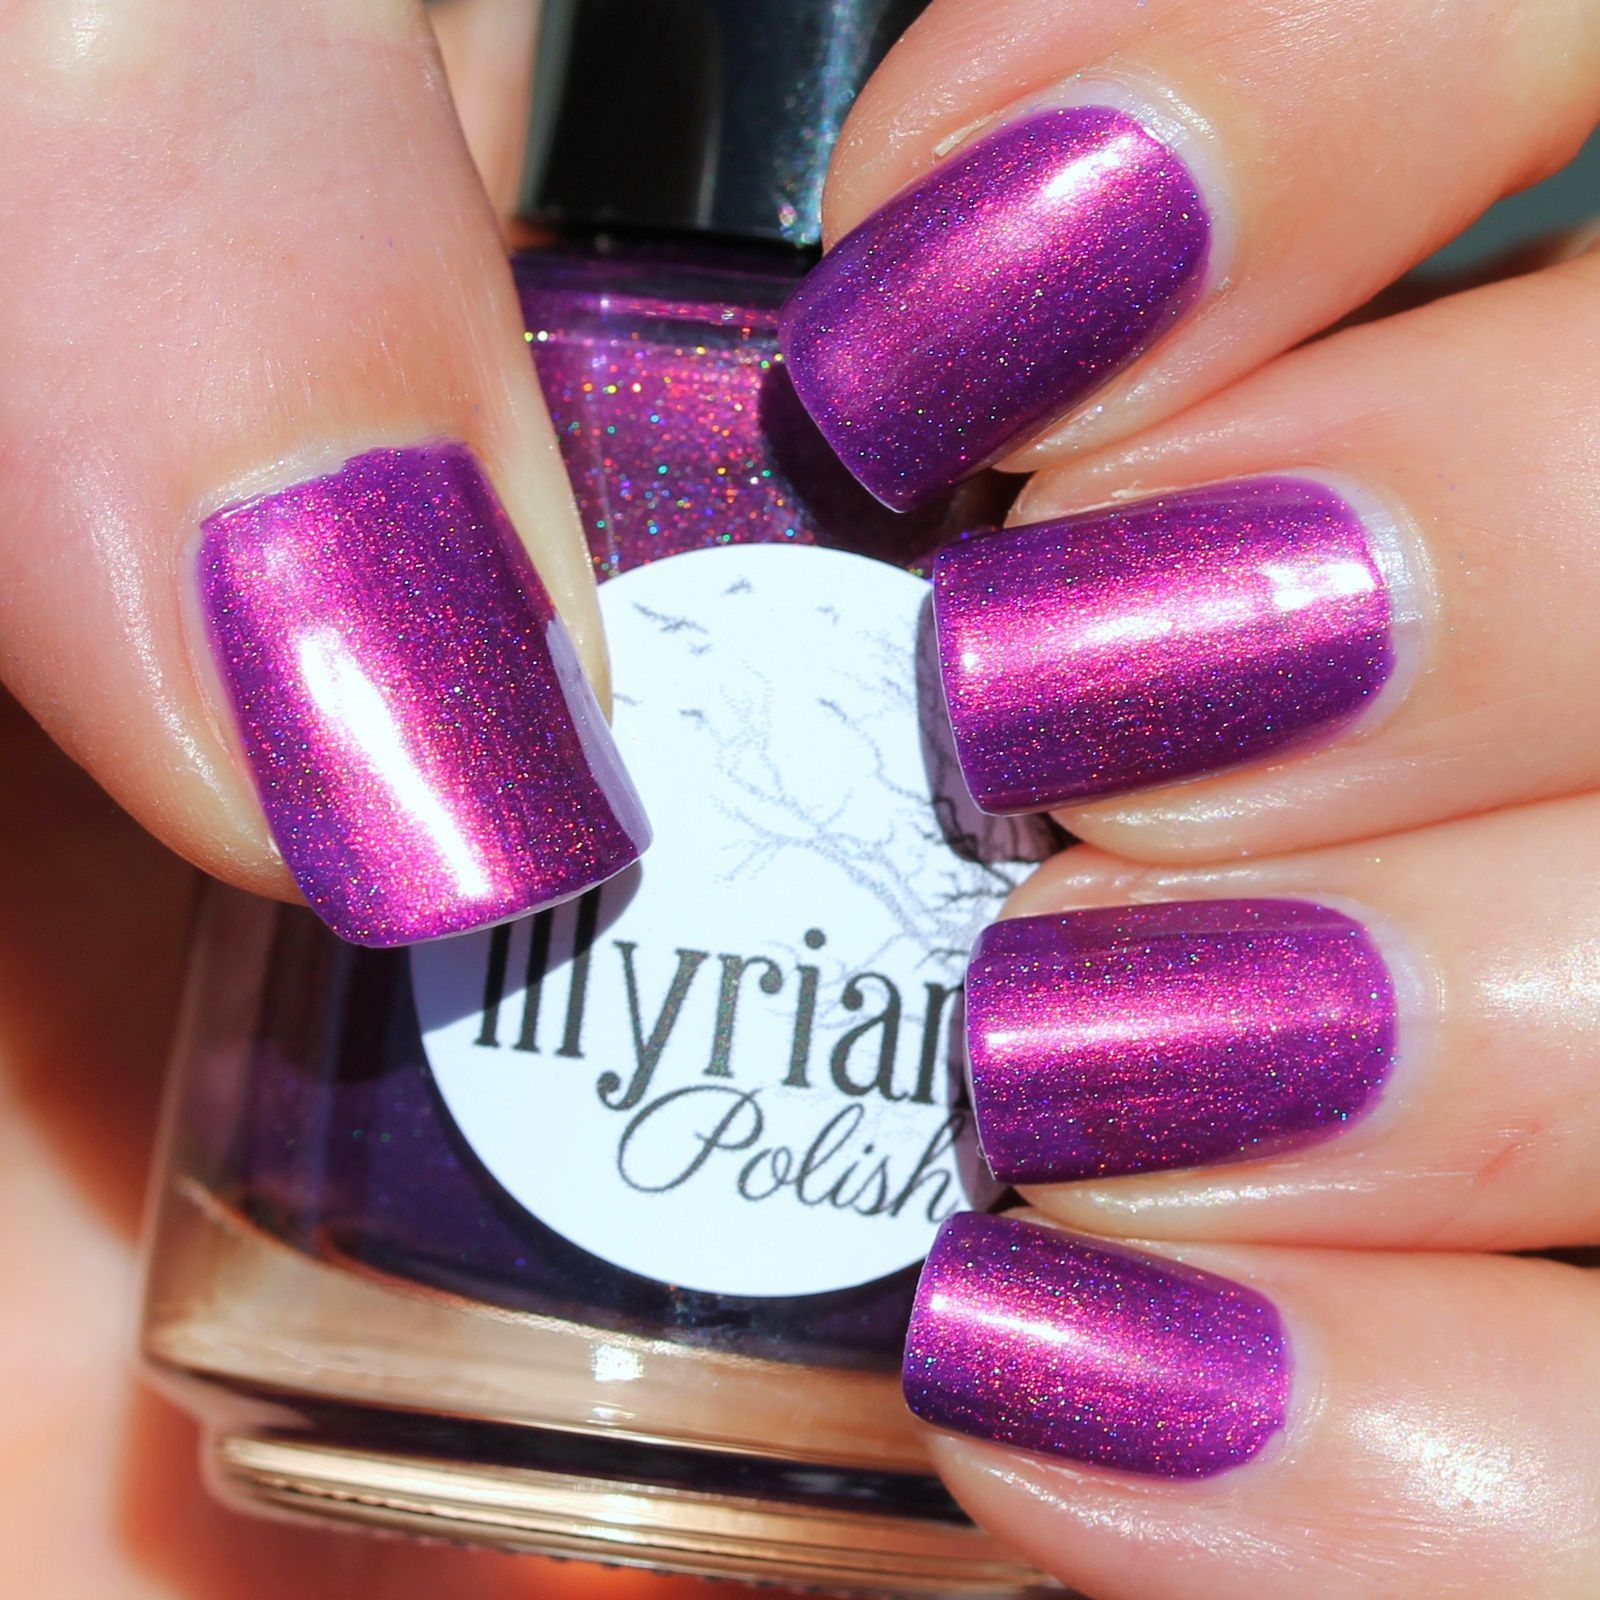 Illyrian Polish Unicorn Spell (2 coats, no top coats)